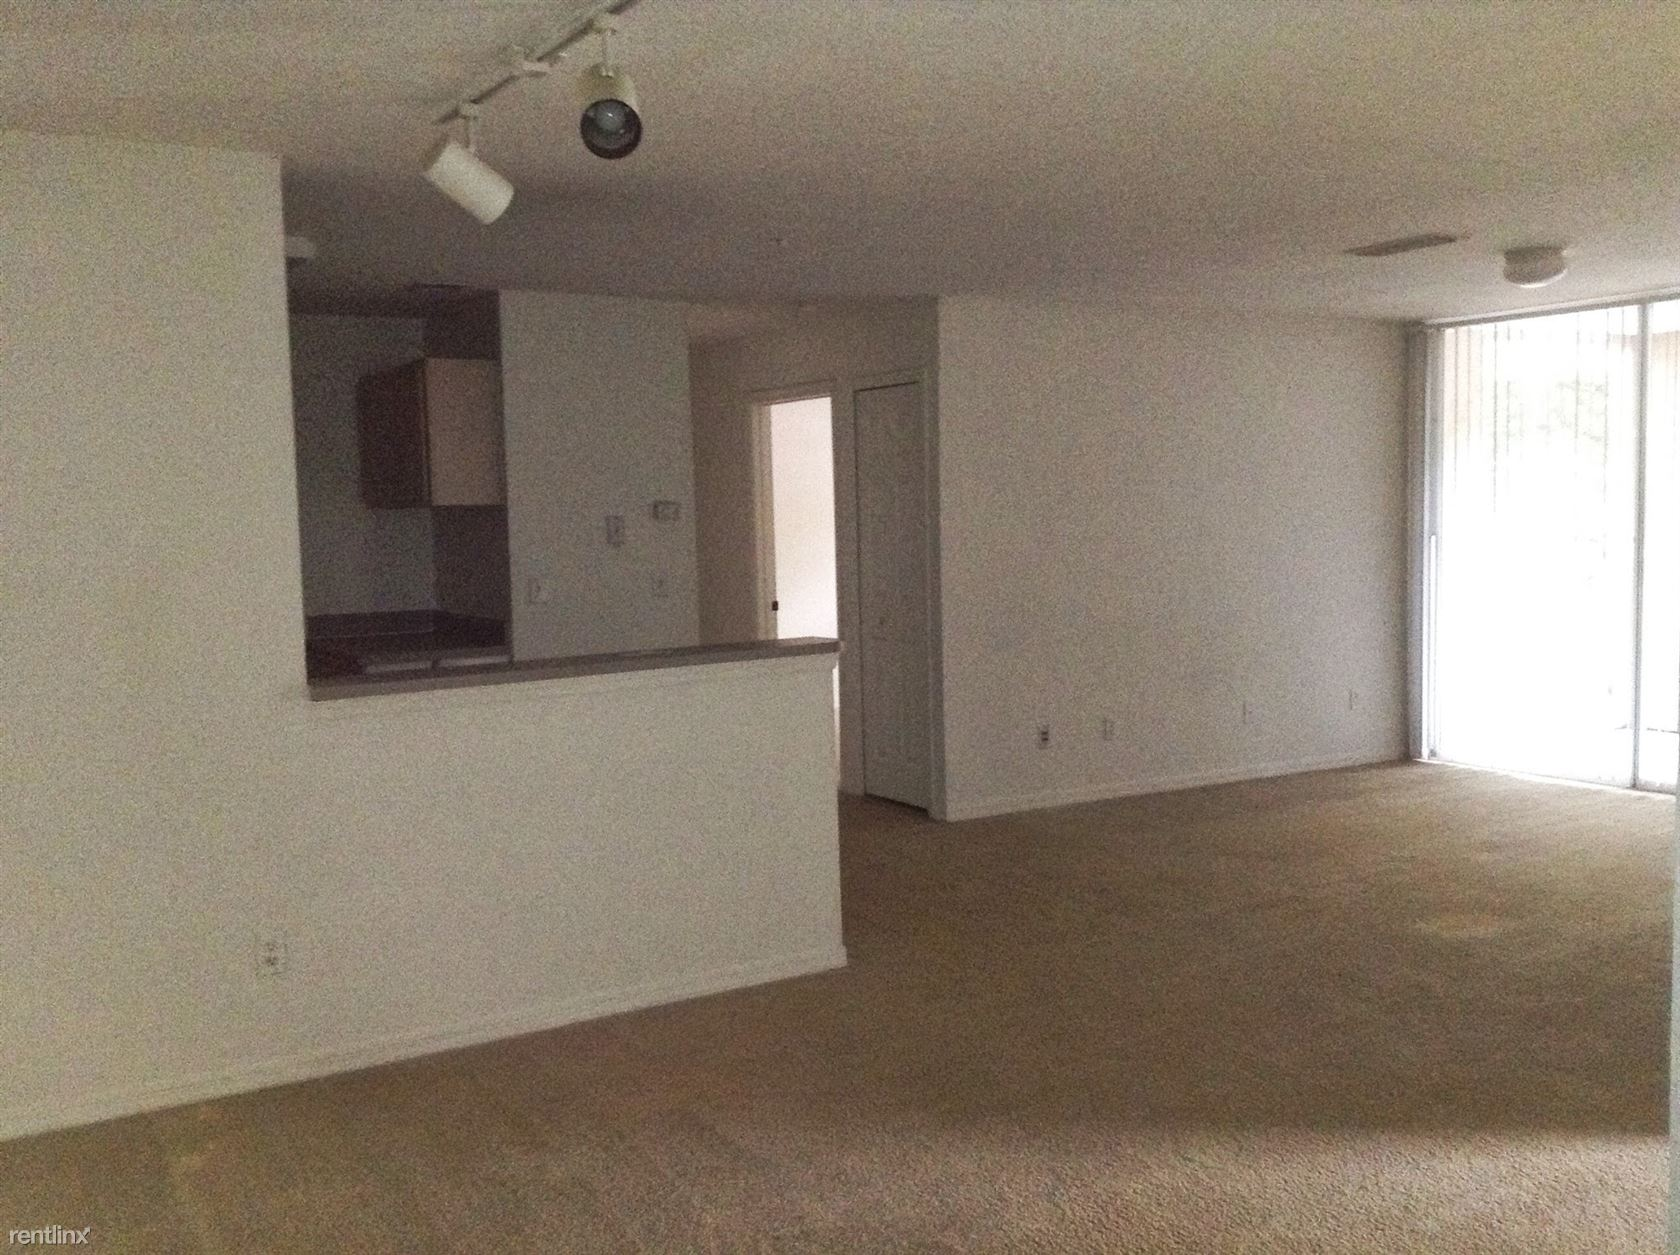 frbo davenport florida united states houses for rent by owner